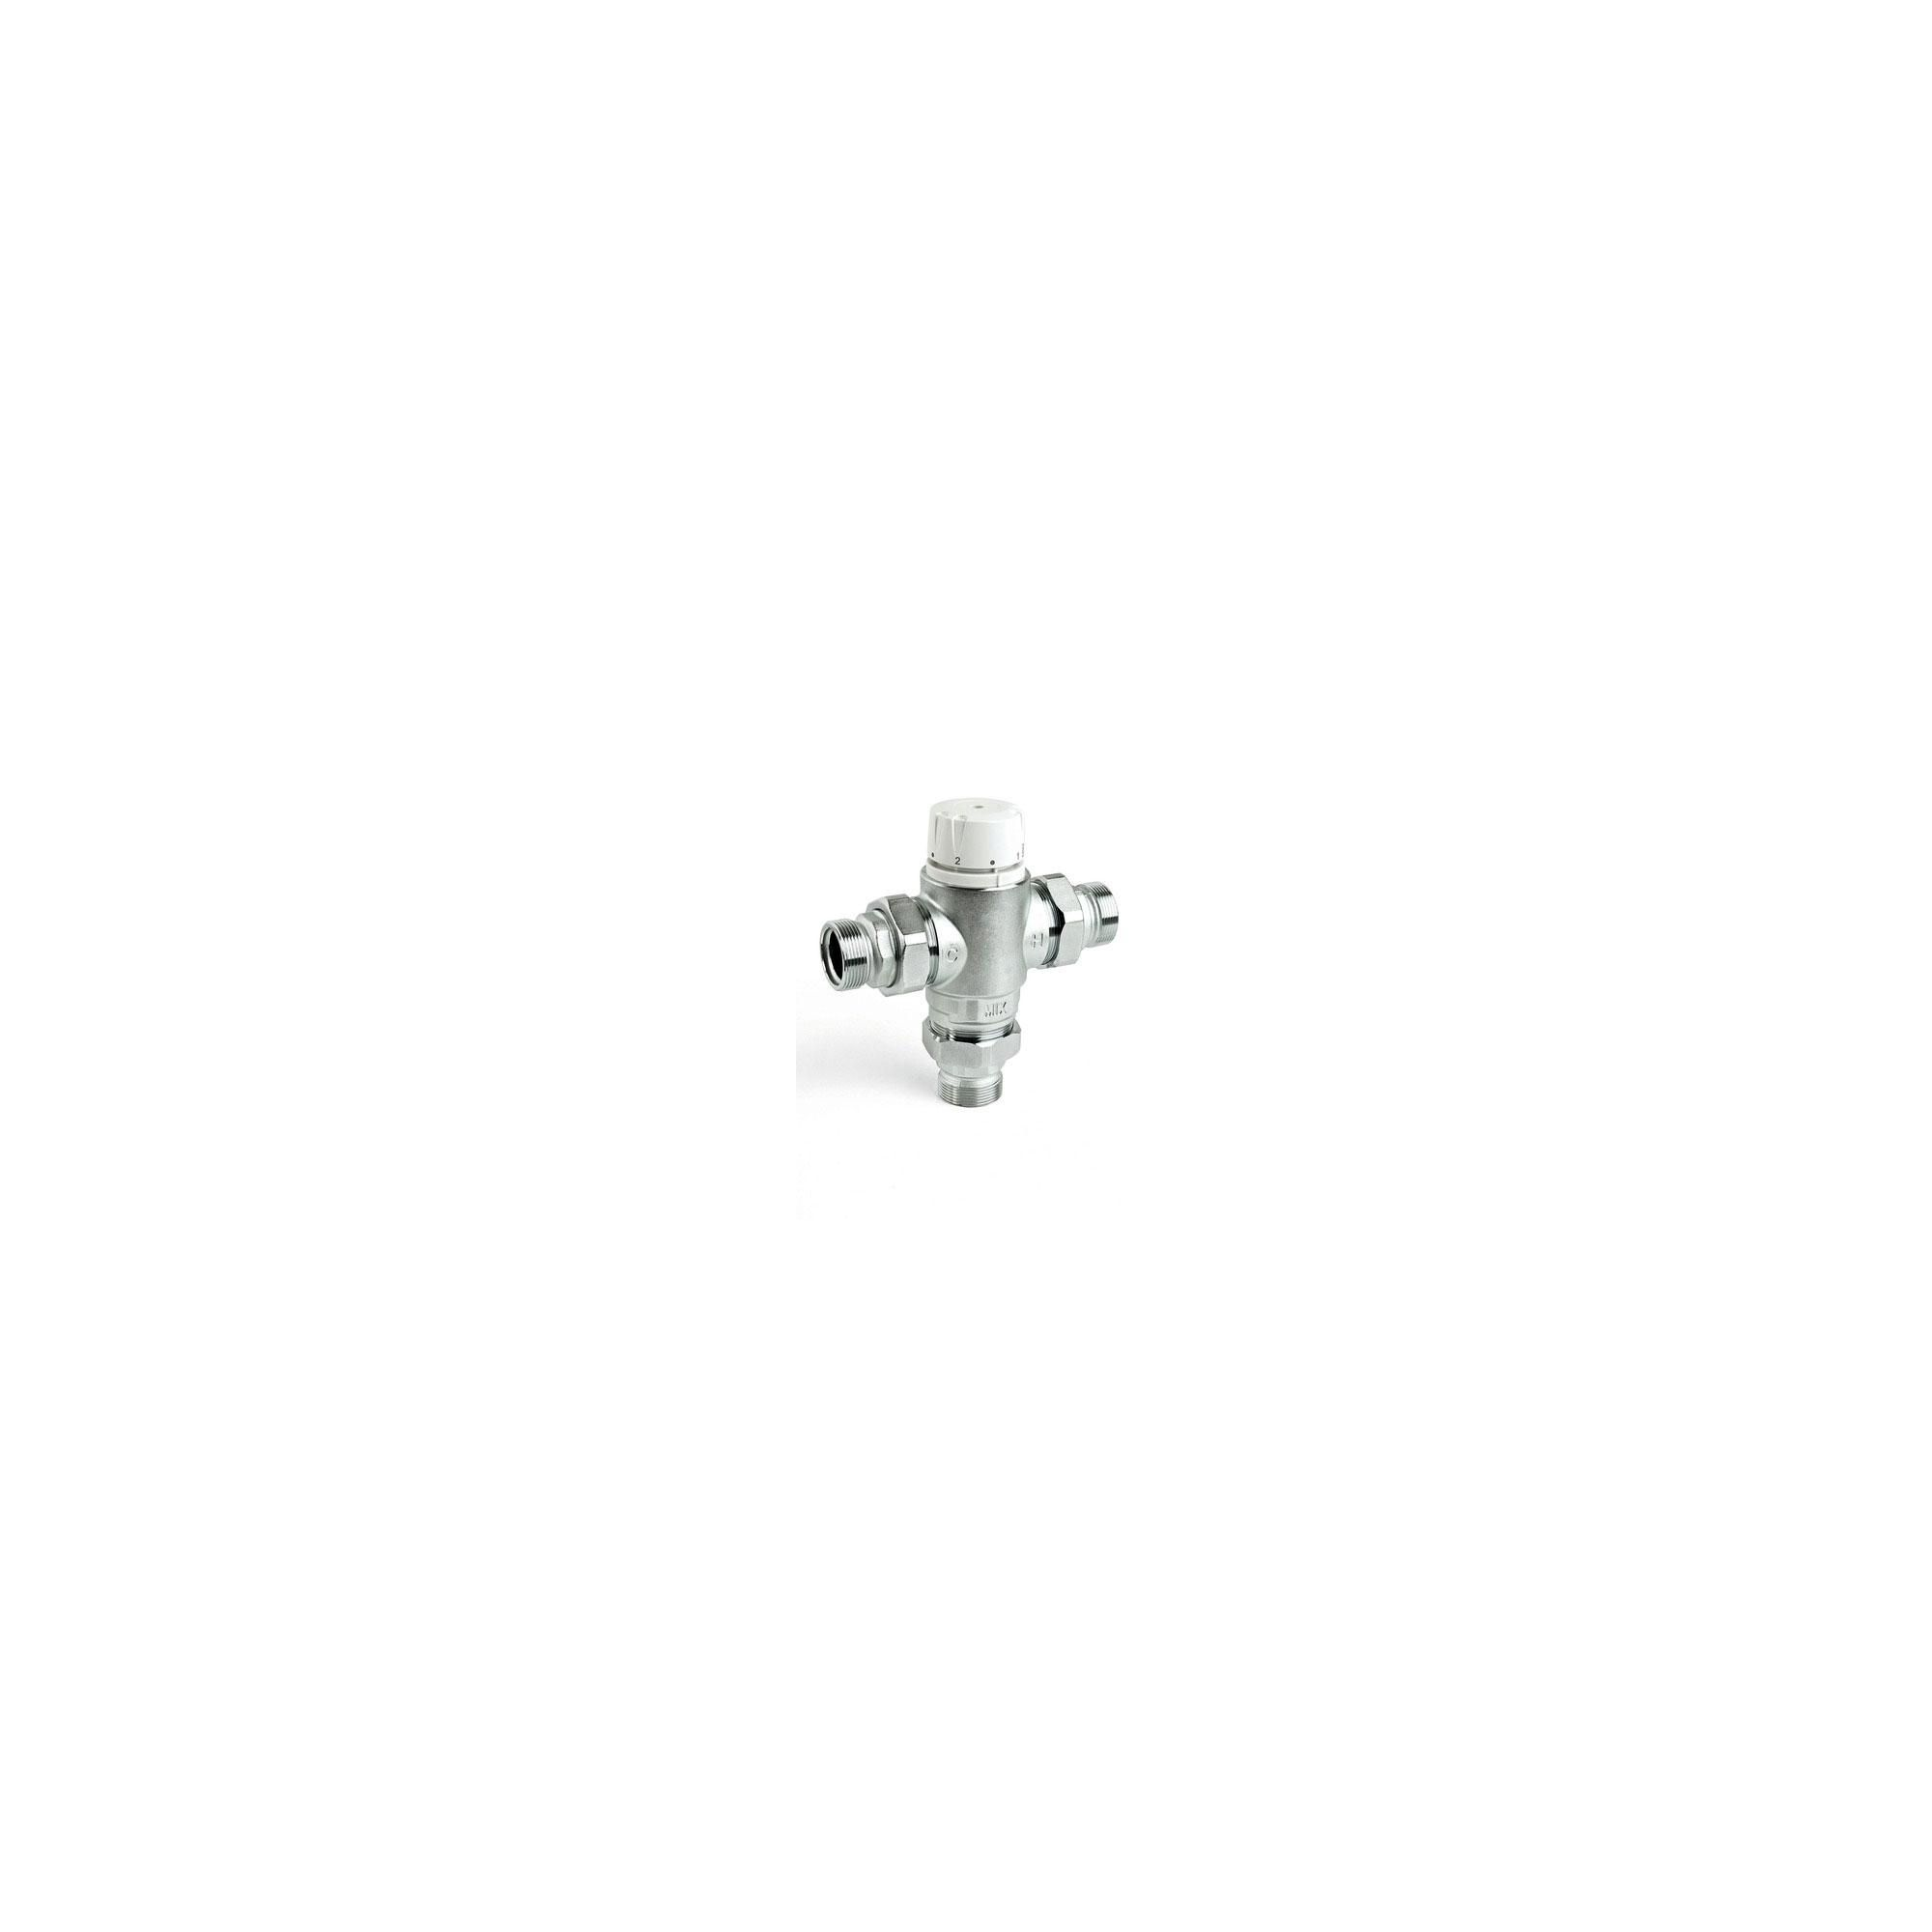 Intamix Pro Thermostatic Mixing Valve 1/2 with Screwed Iron with Check Valves at Tesco Direct